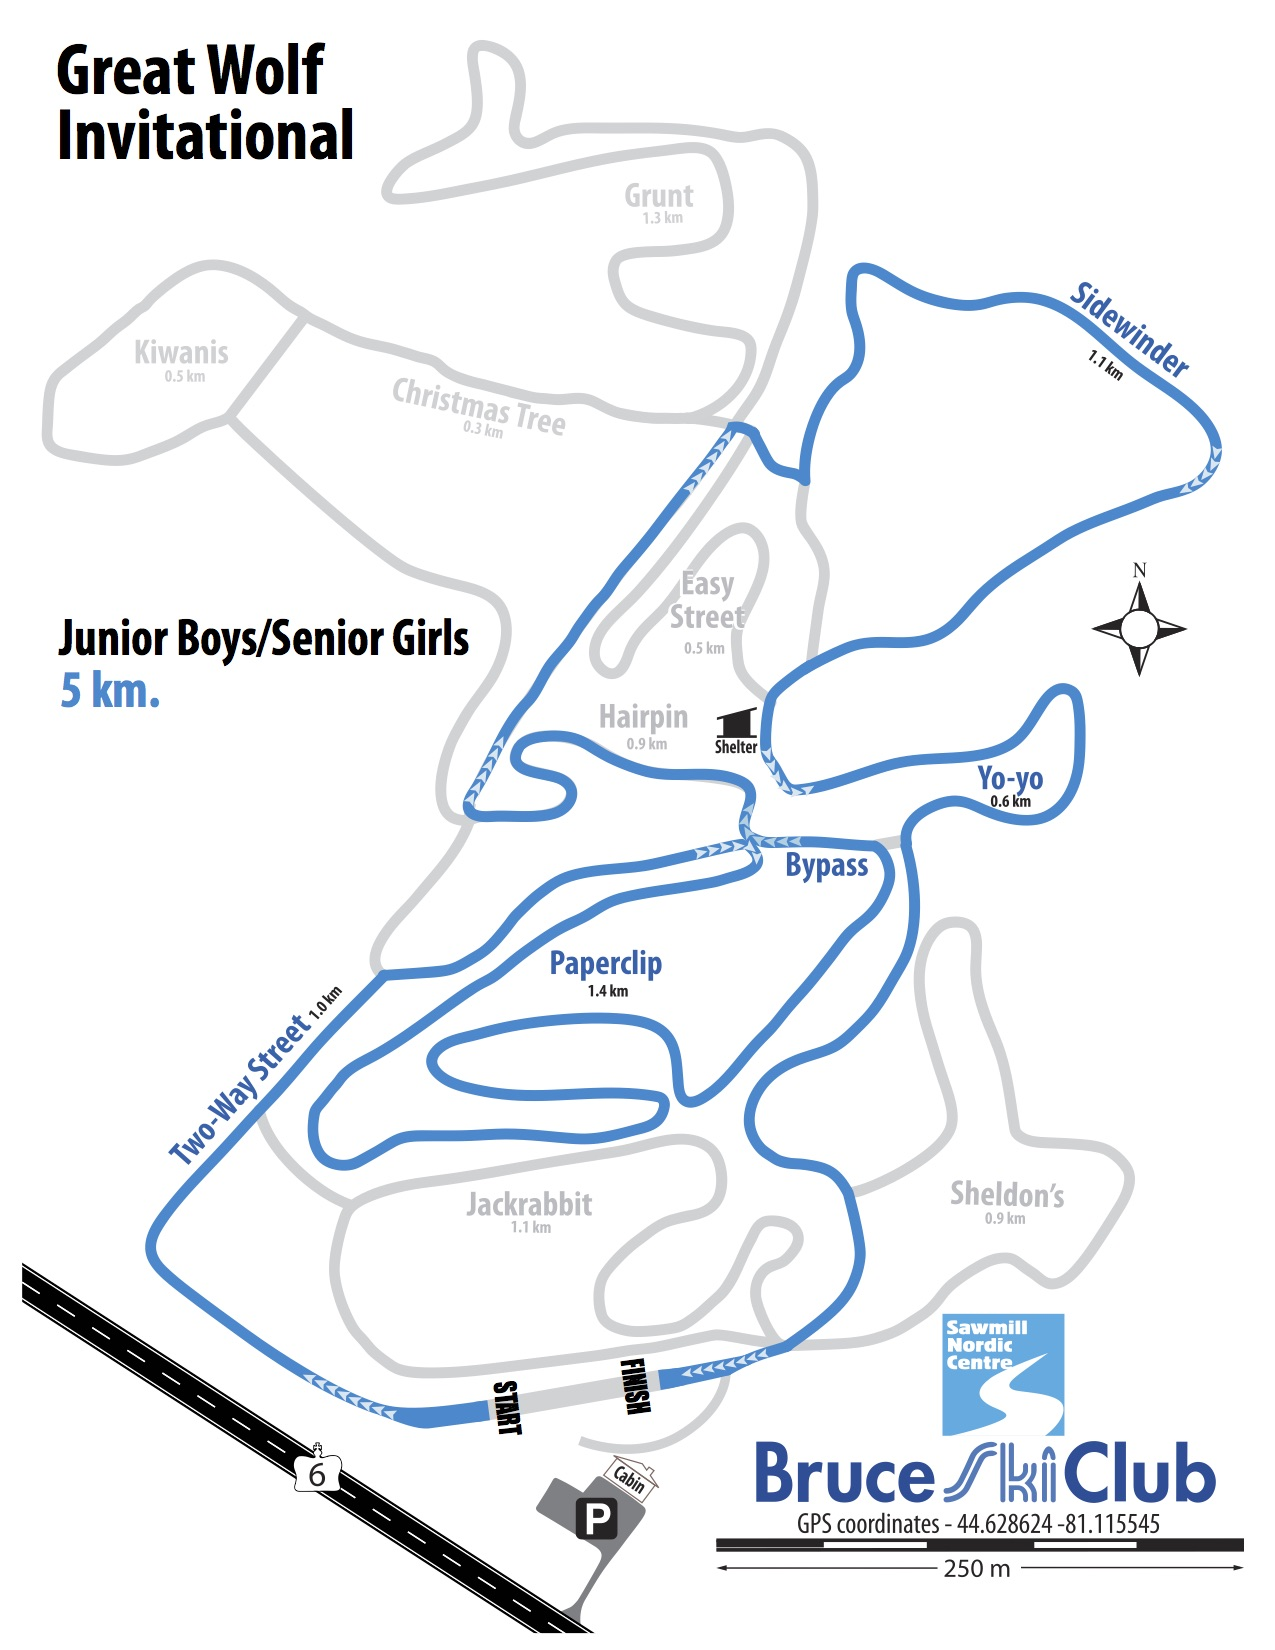 Great Wolf Invitational Cross-Country Ski Race, Hepworth, Ontario - Map: Junior Boys, Senior Girls